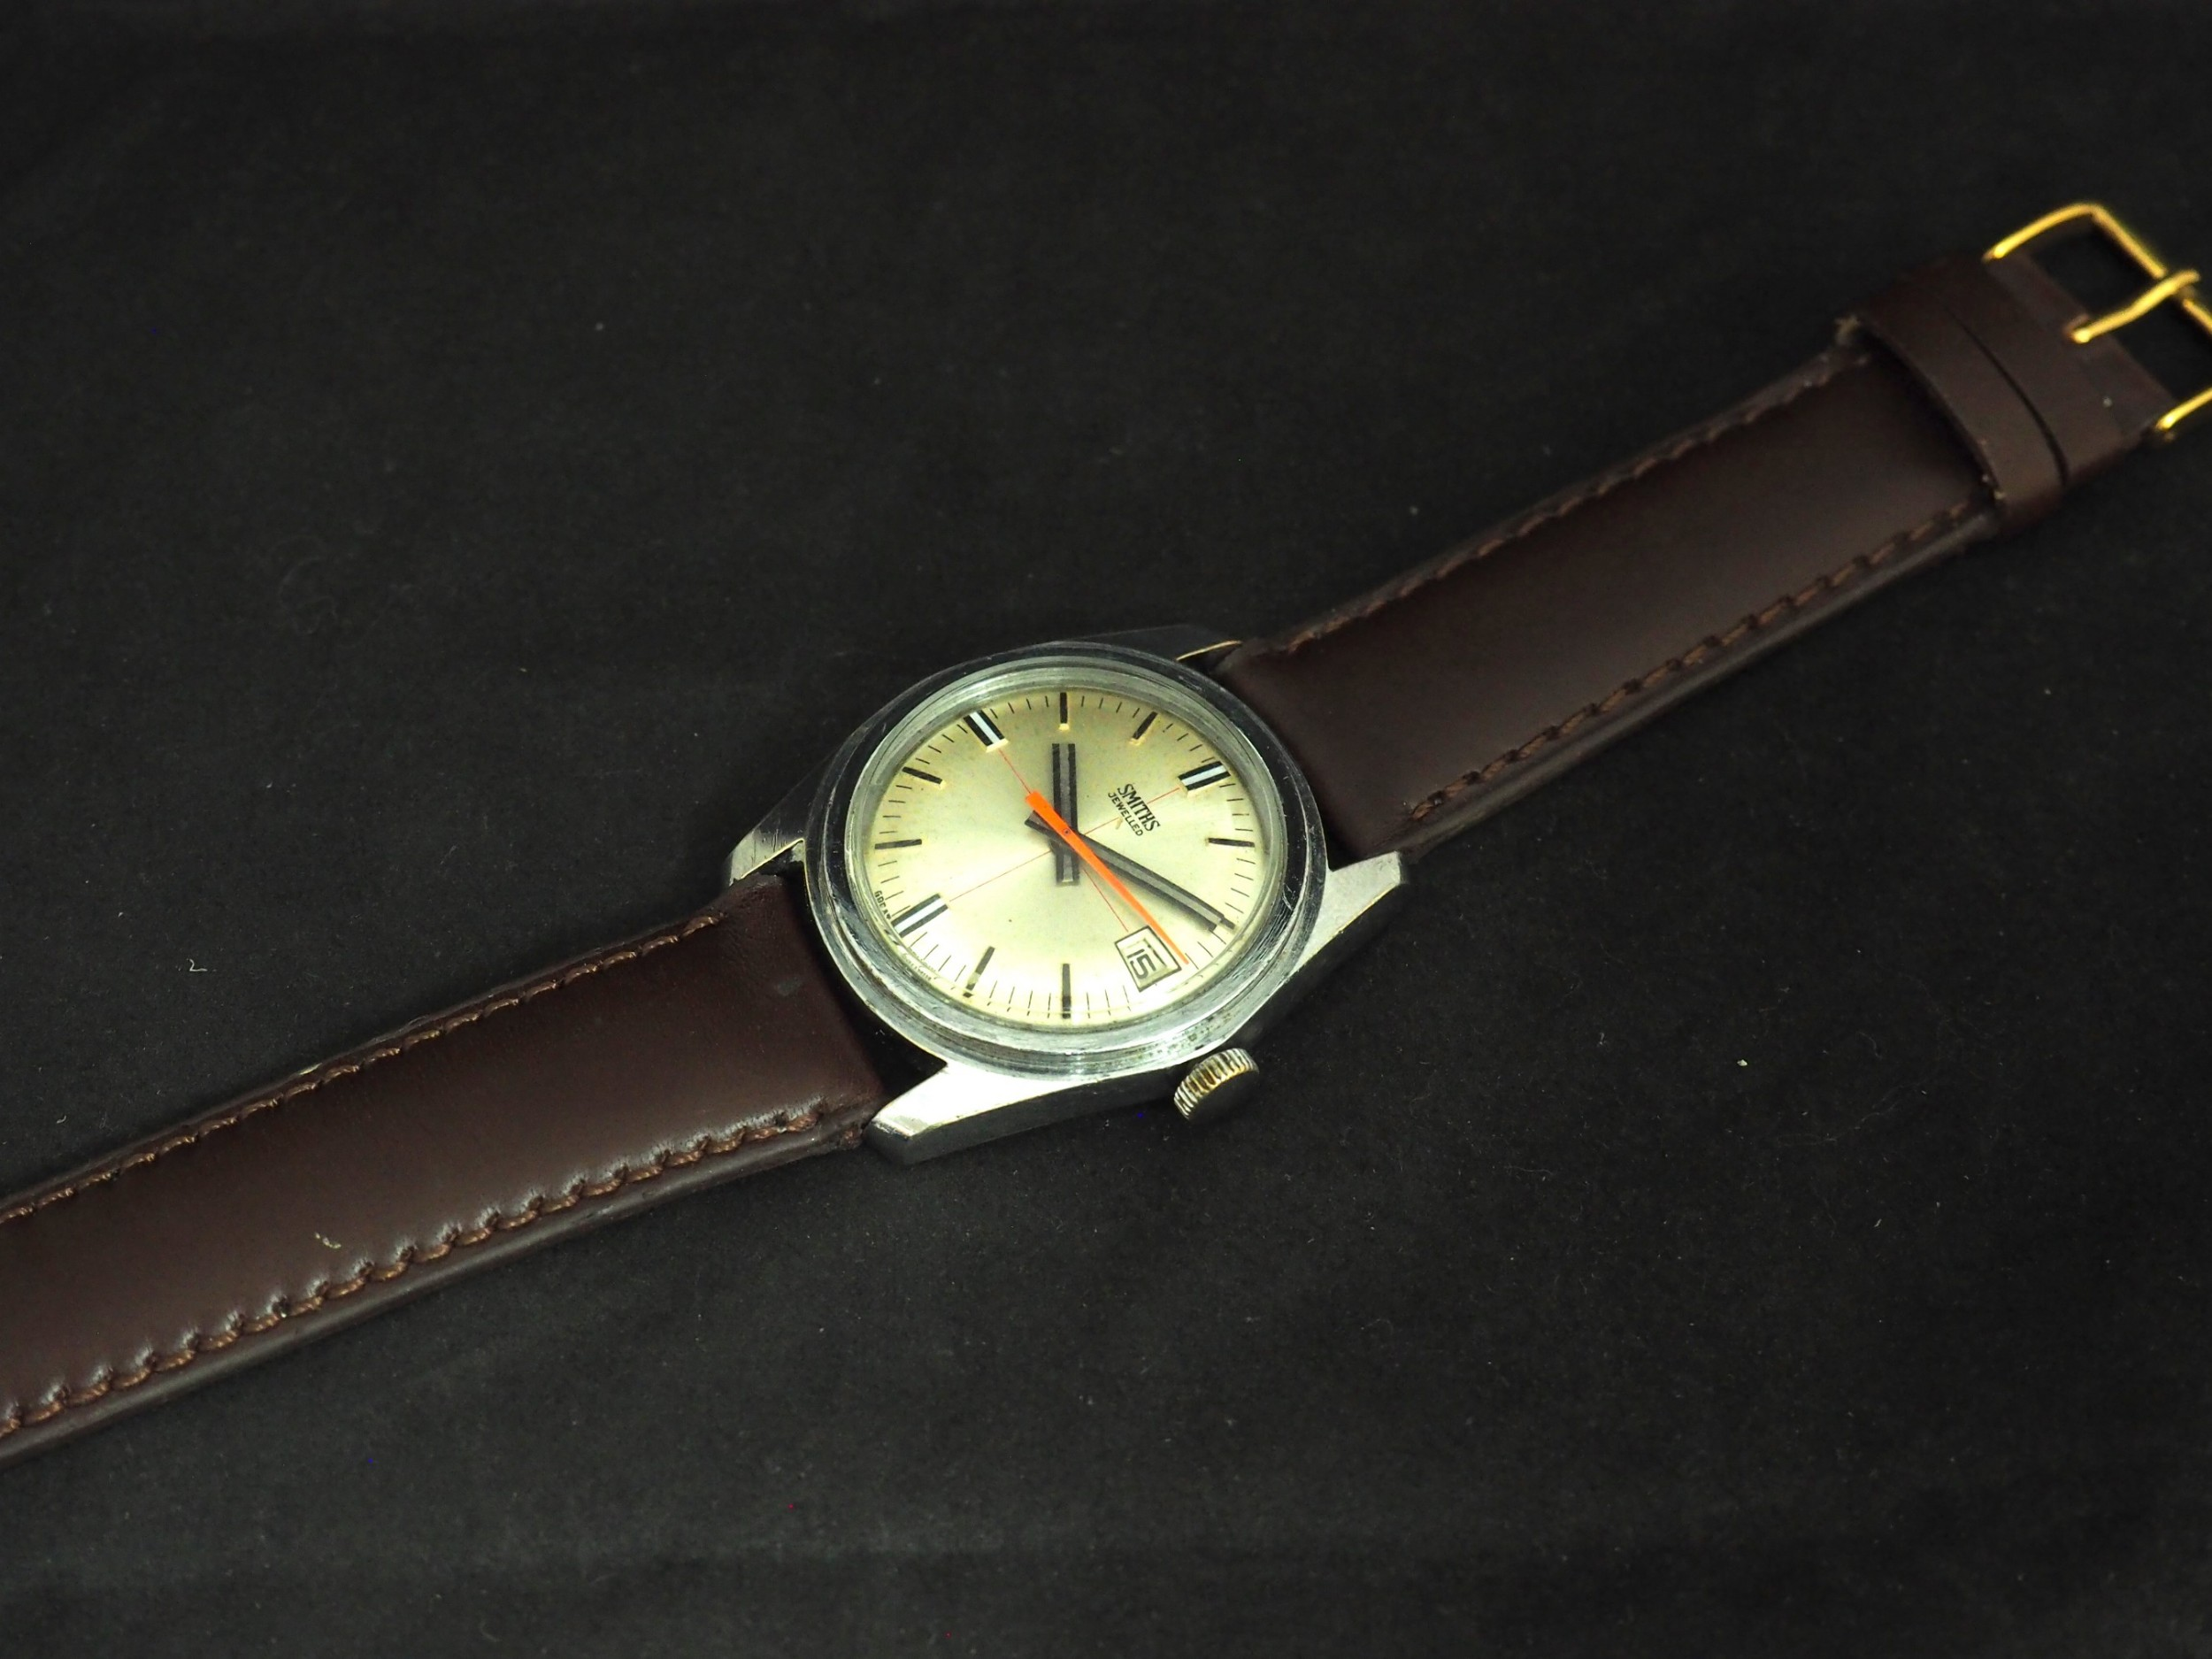 vintage gents manual wind wrist watch by smiths silver dish dial leather strap with date app